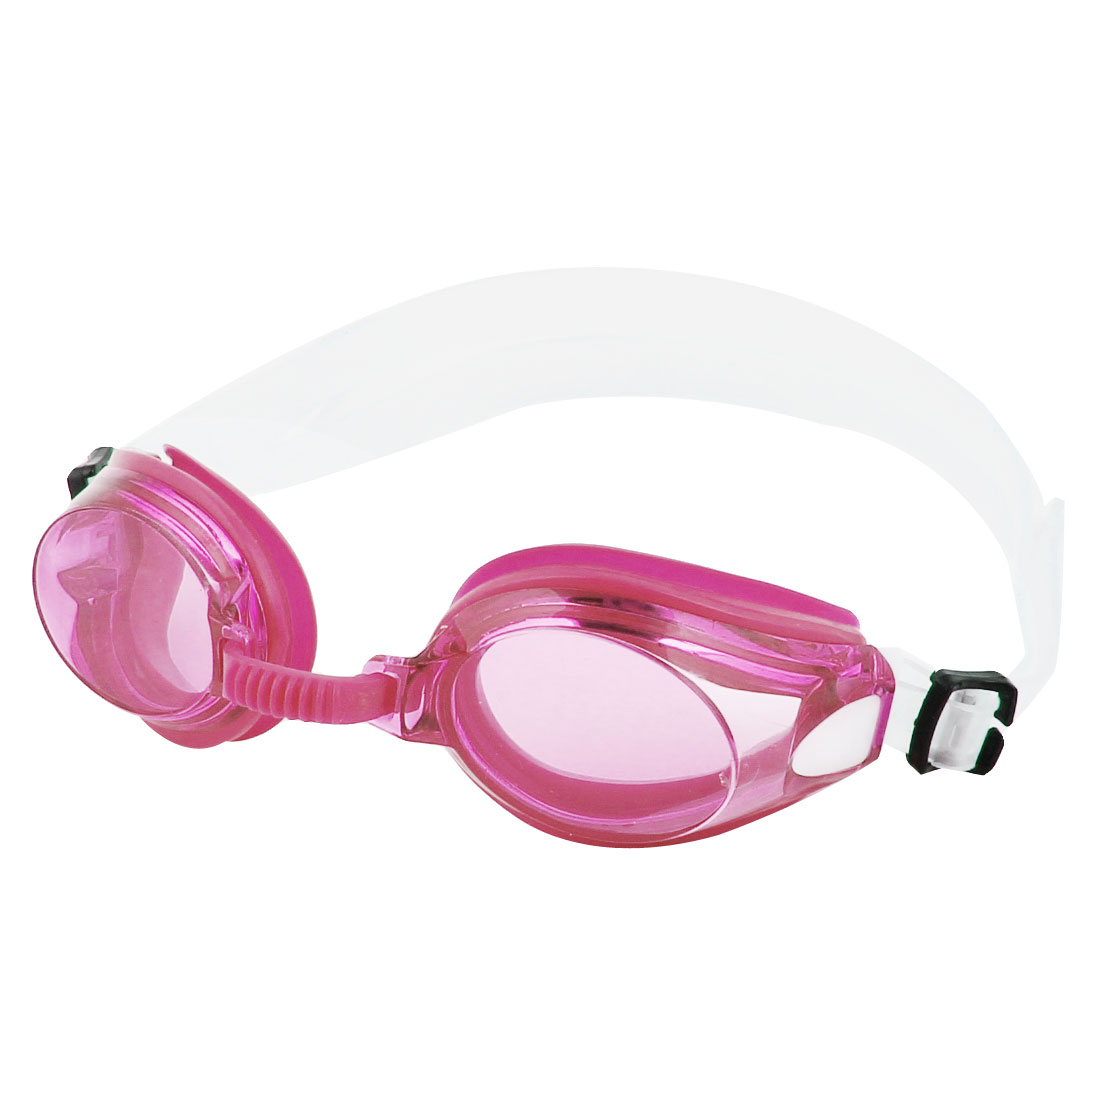 Plastic Silicone Protective Swimming Goggles Pink w Earplug for Unisex